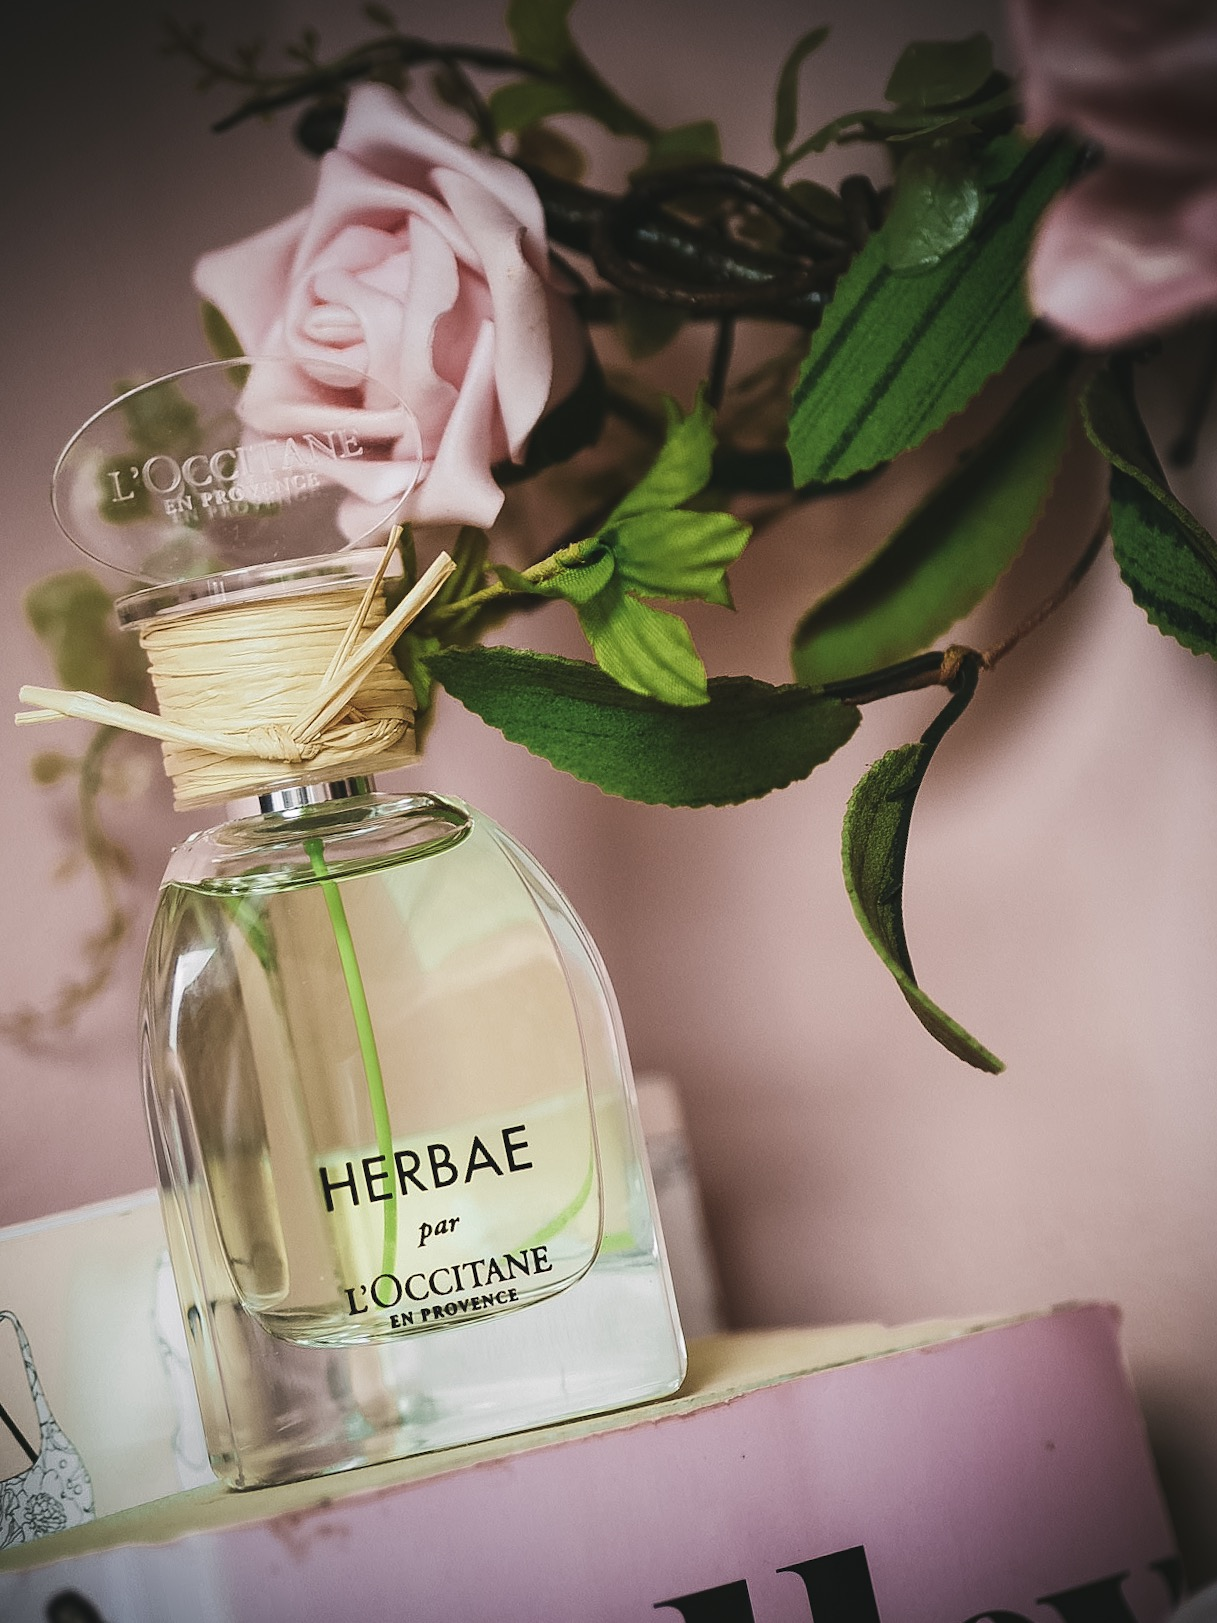 L'Occitane 'Herbae par L'Occitane' the best l'occitane perfume fragrance review 2019 green perfume new launch the best of french fragrances 1